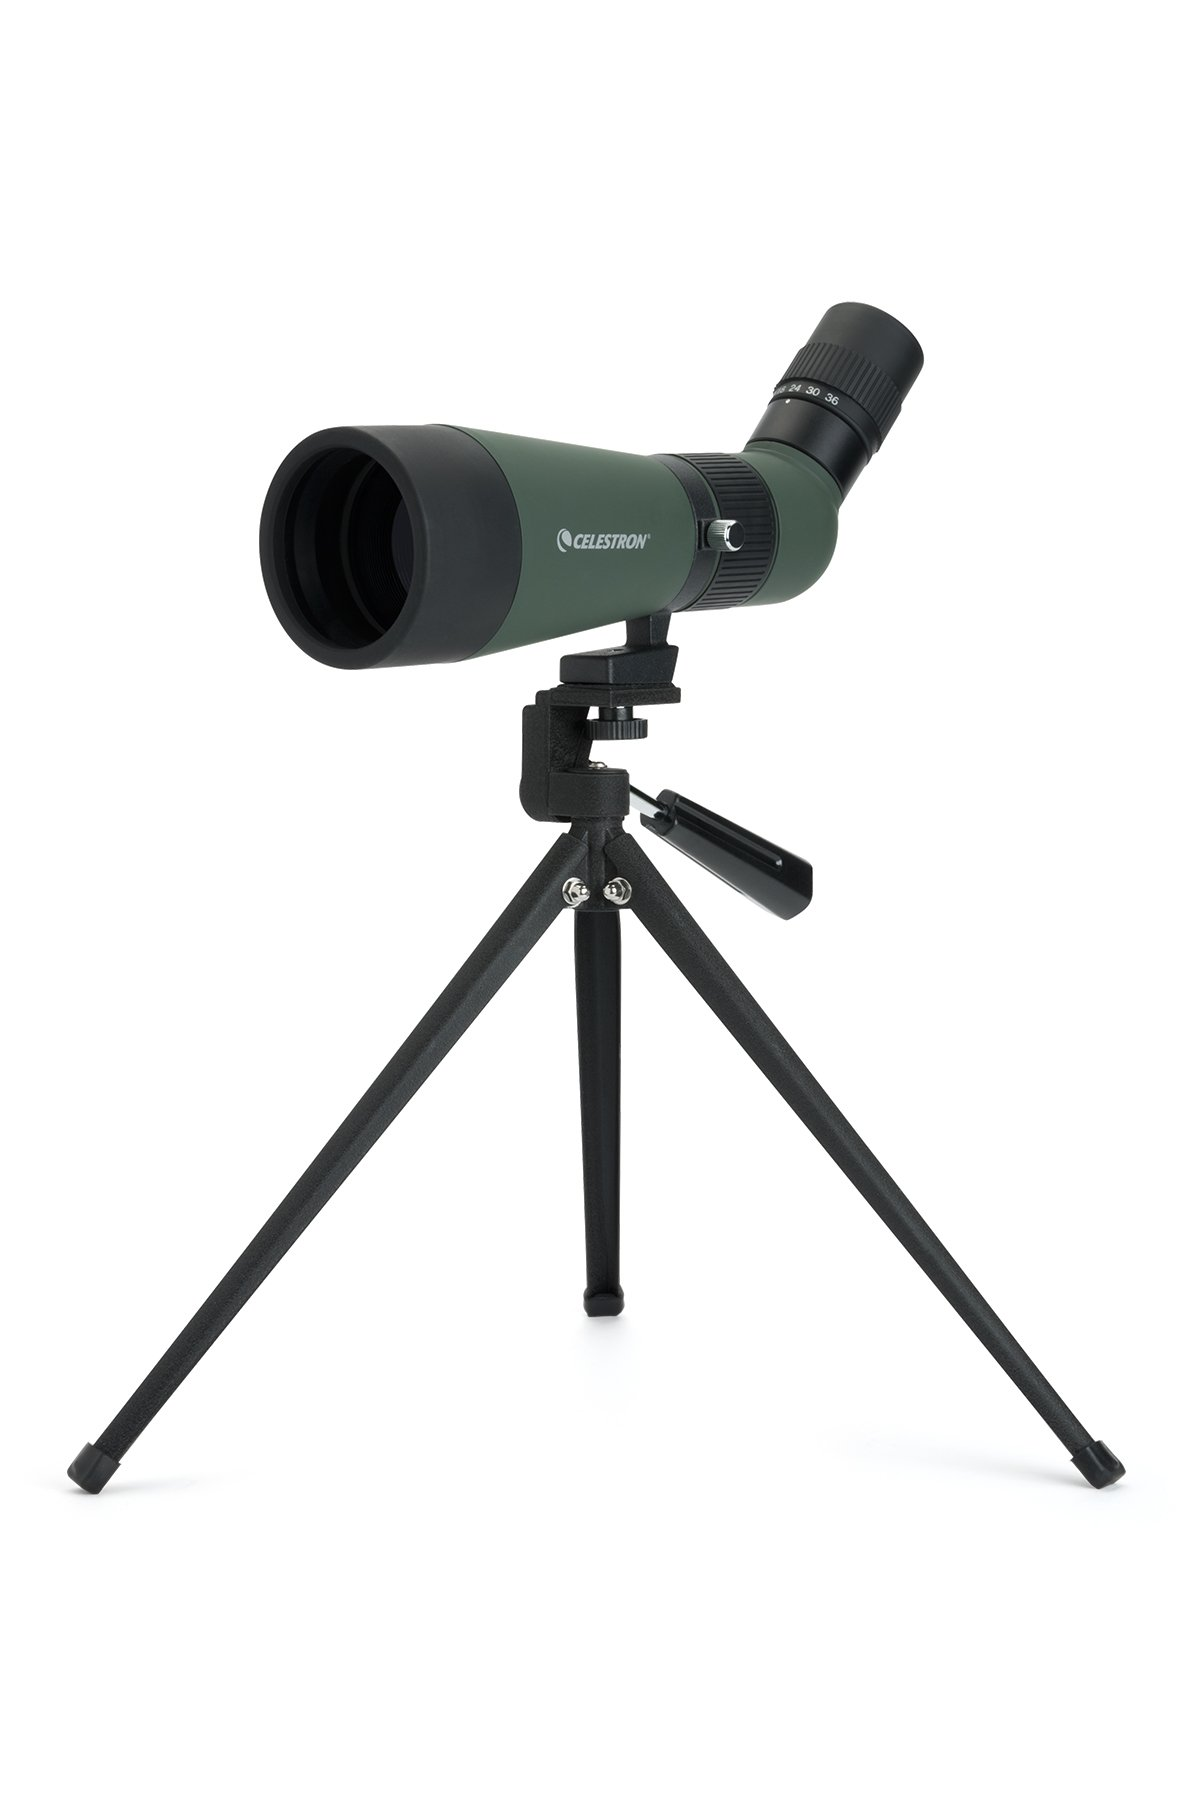 Celestron 52322 Landscout 12-36x60 Spotting Scope (Army Green) by Celestron